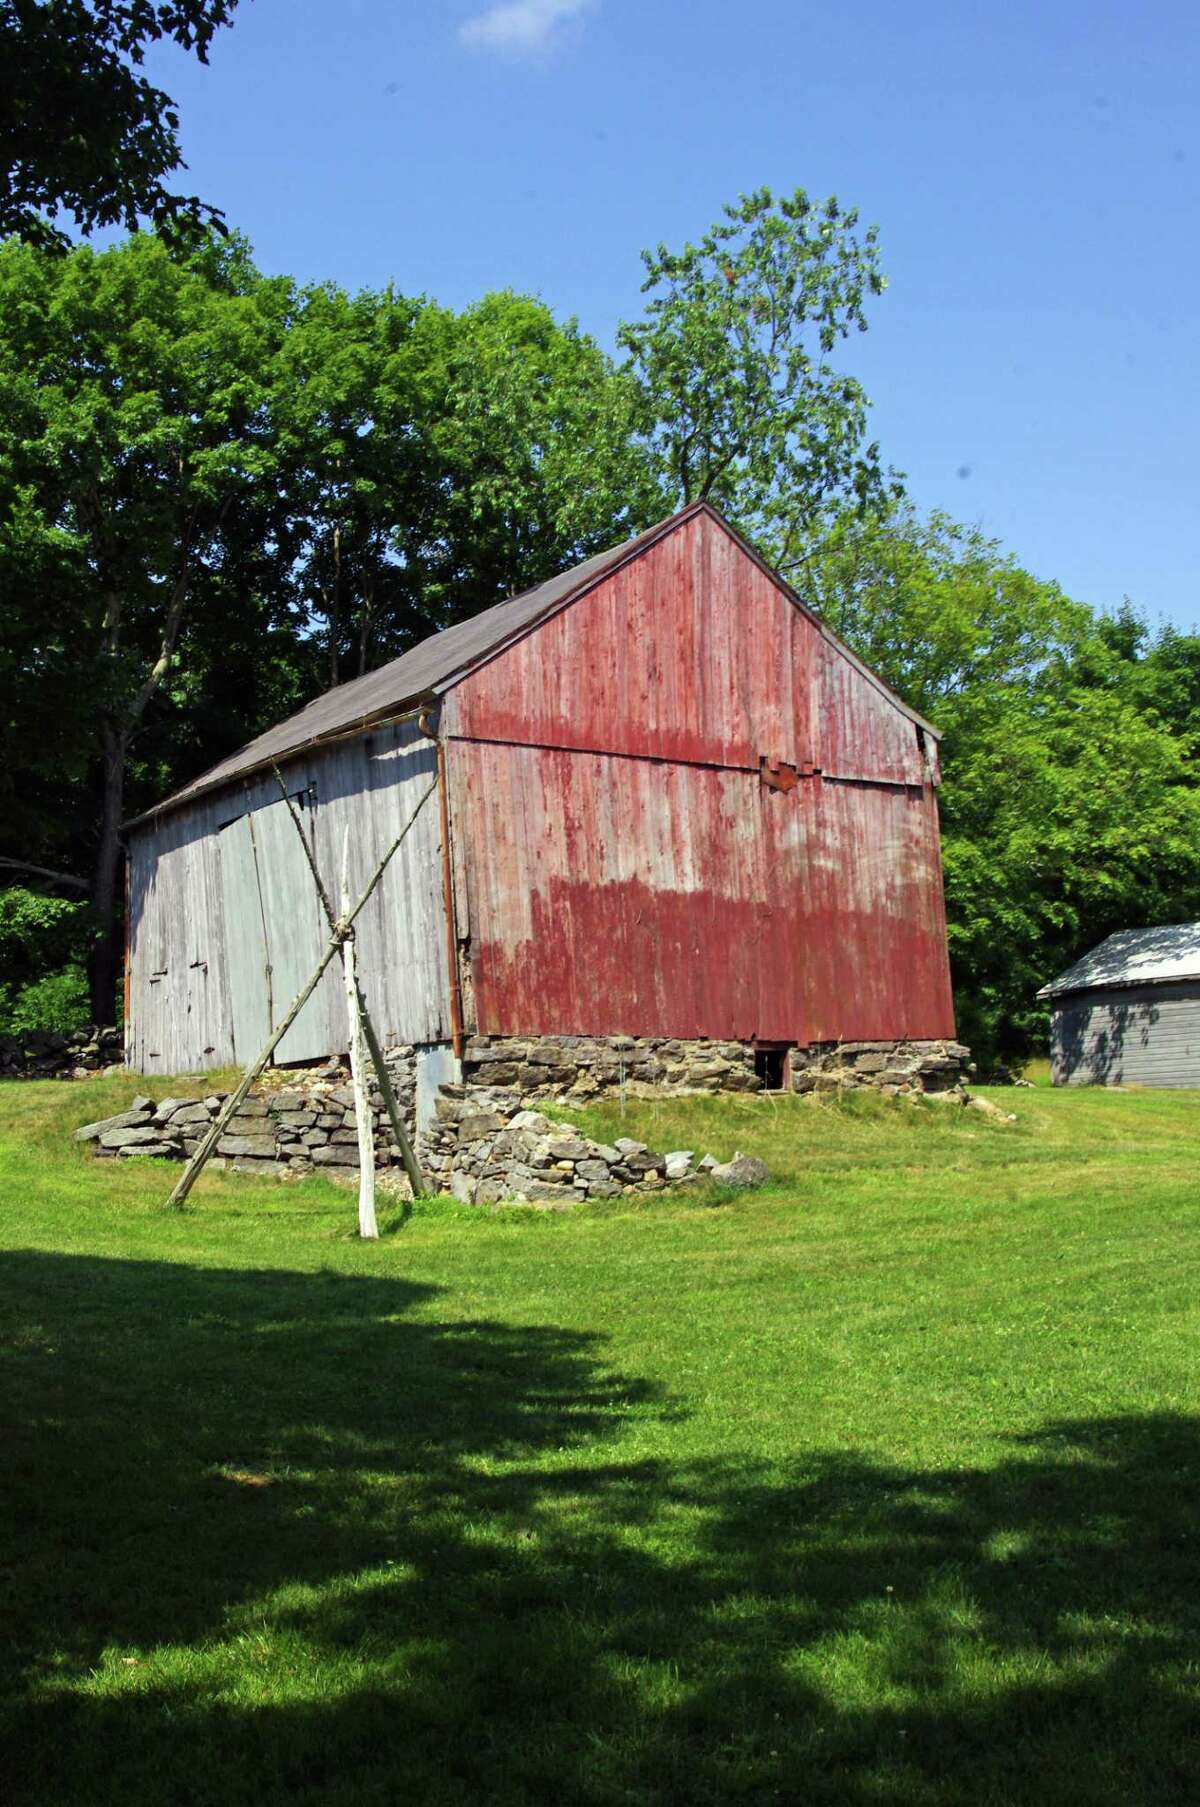 The Rettich barn is listed in the Historic Barns of Connecticut list.